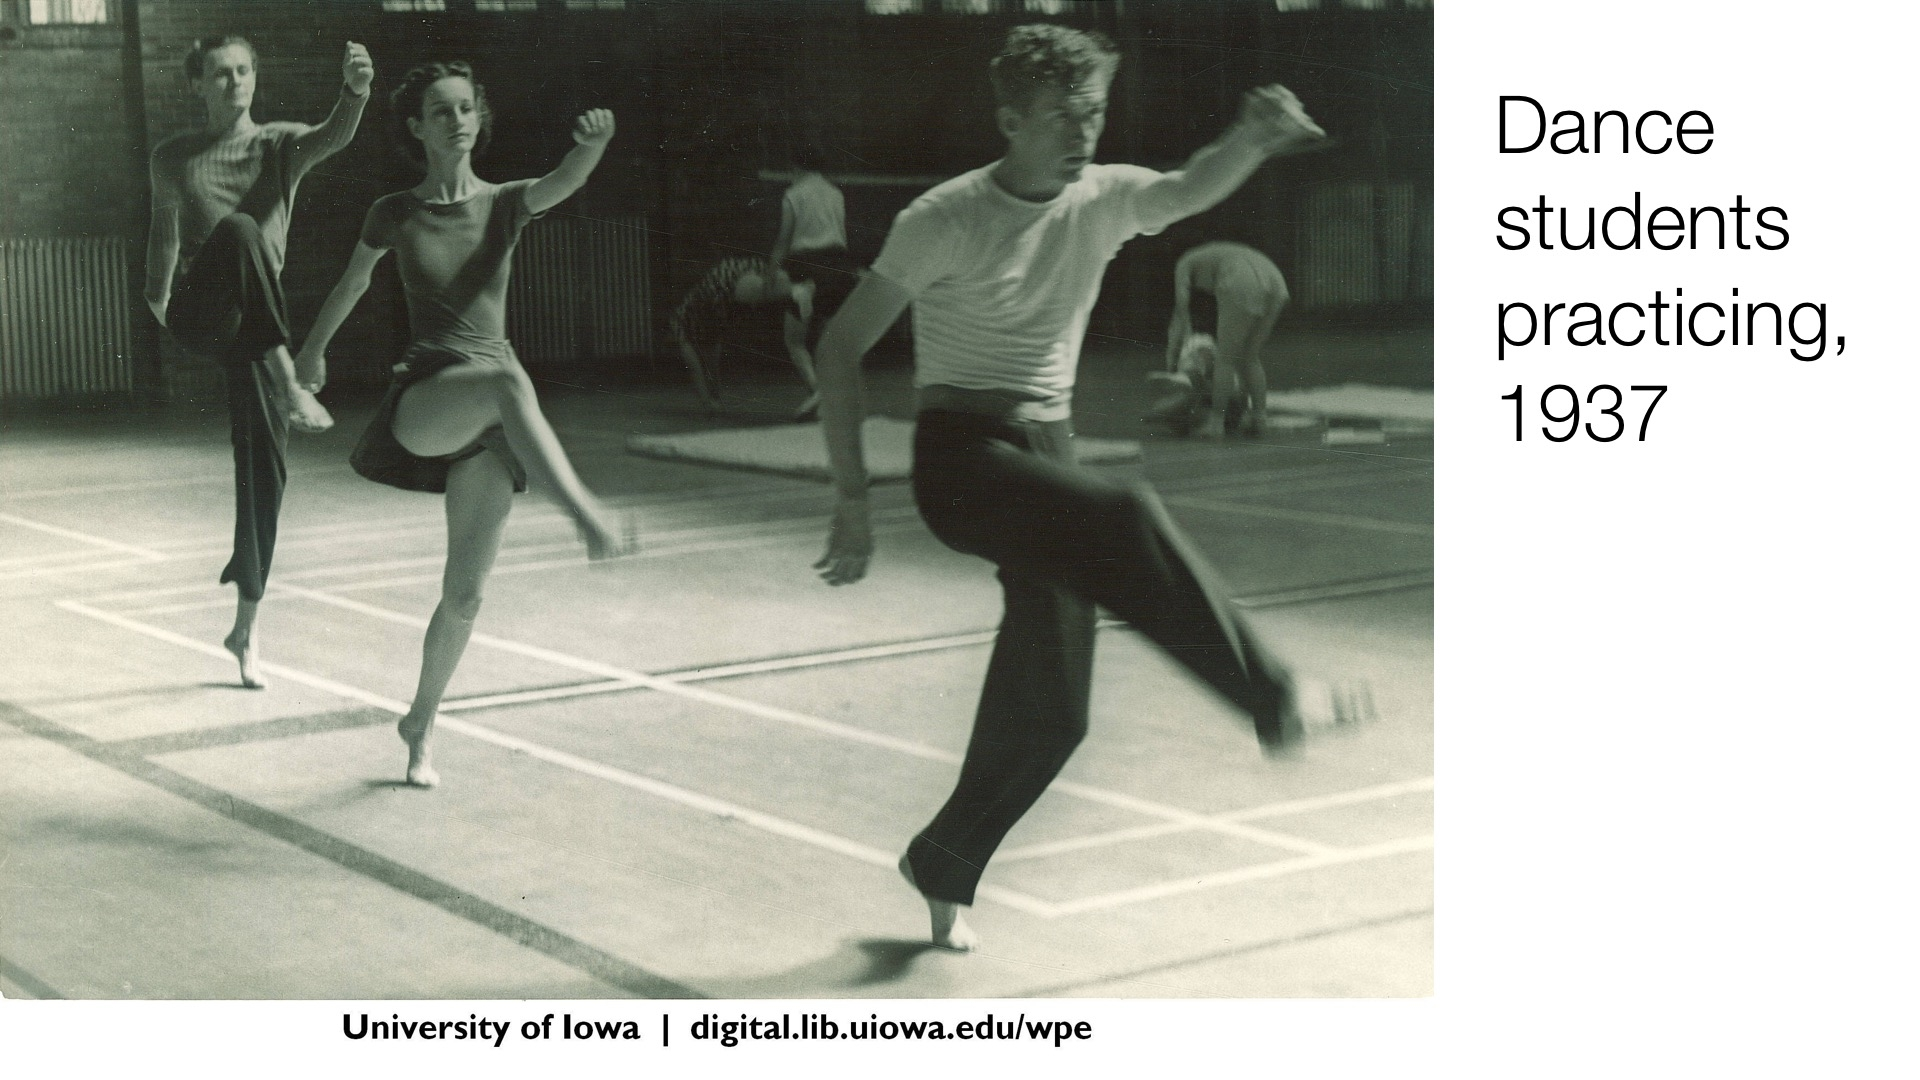 Dance students practicing, 1937